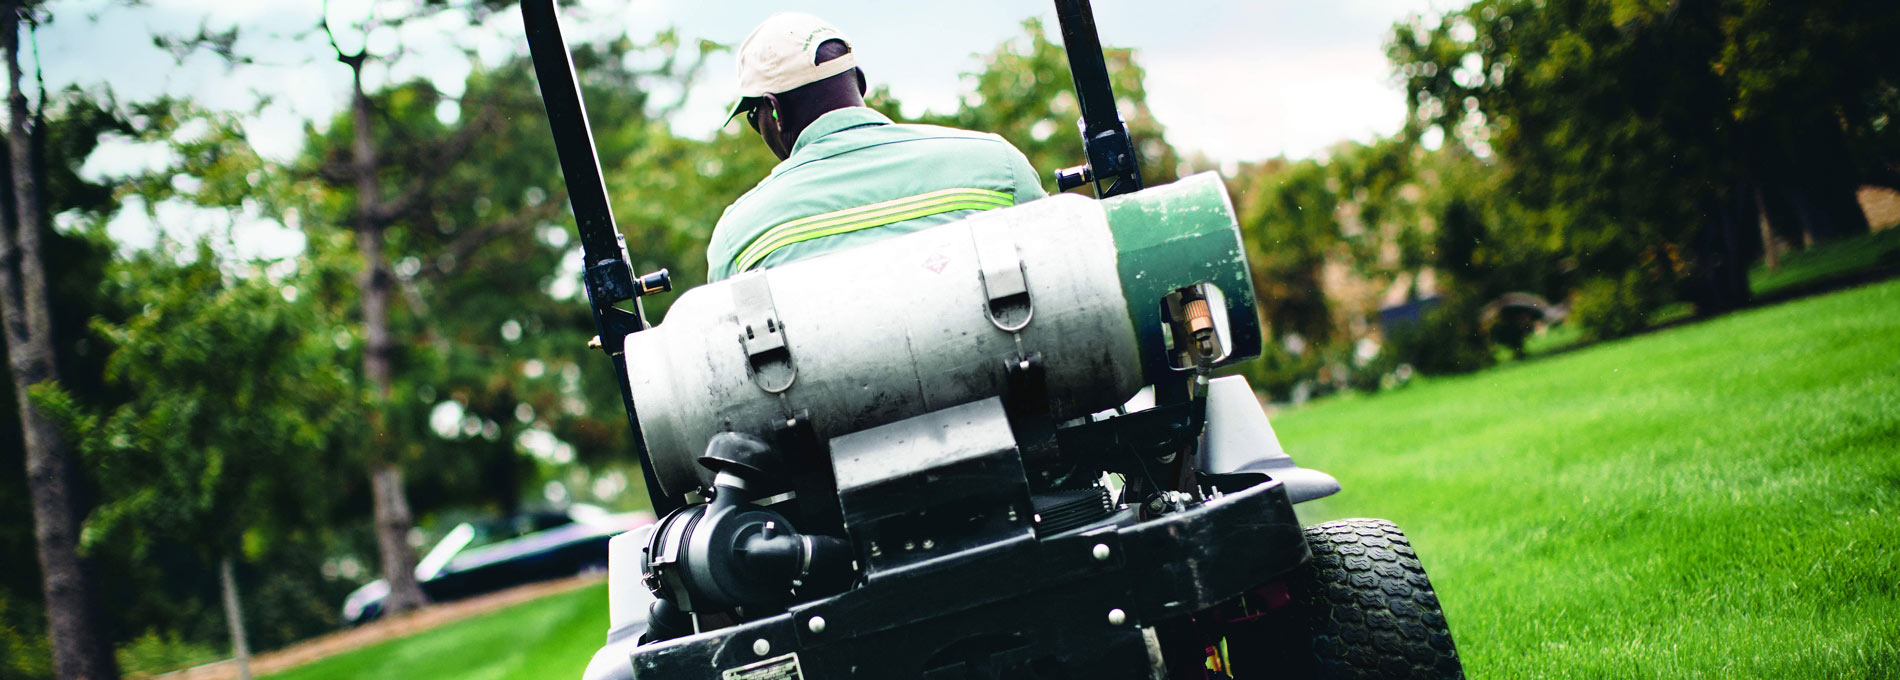 Commercial Propane Lawn Mowers using Sharp AutoGas